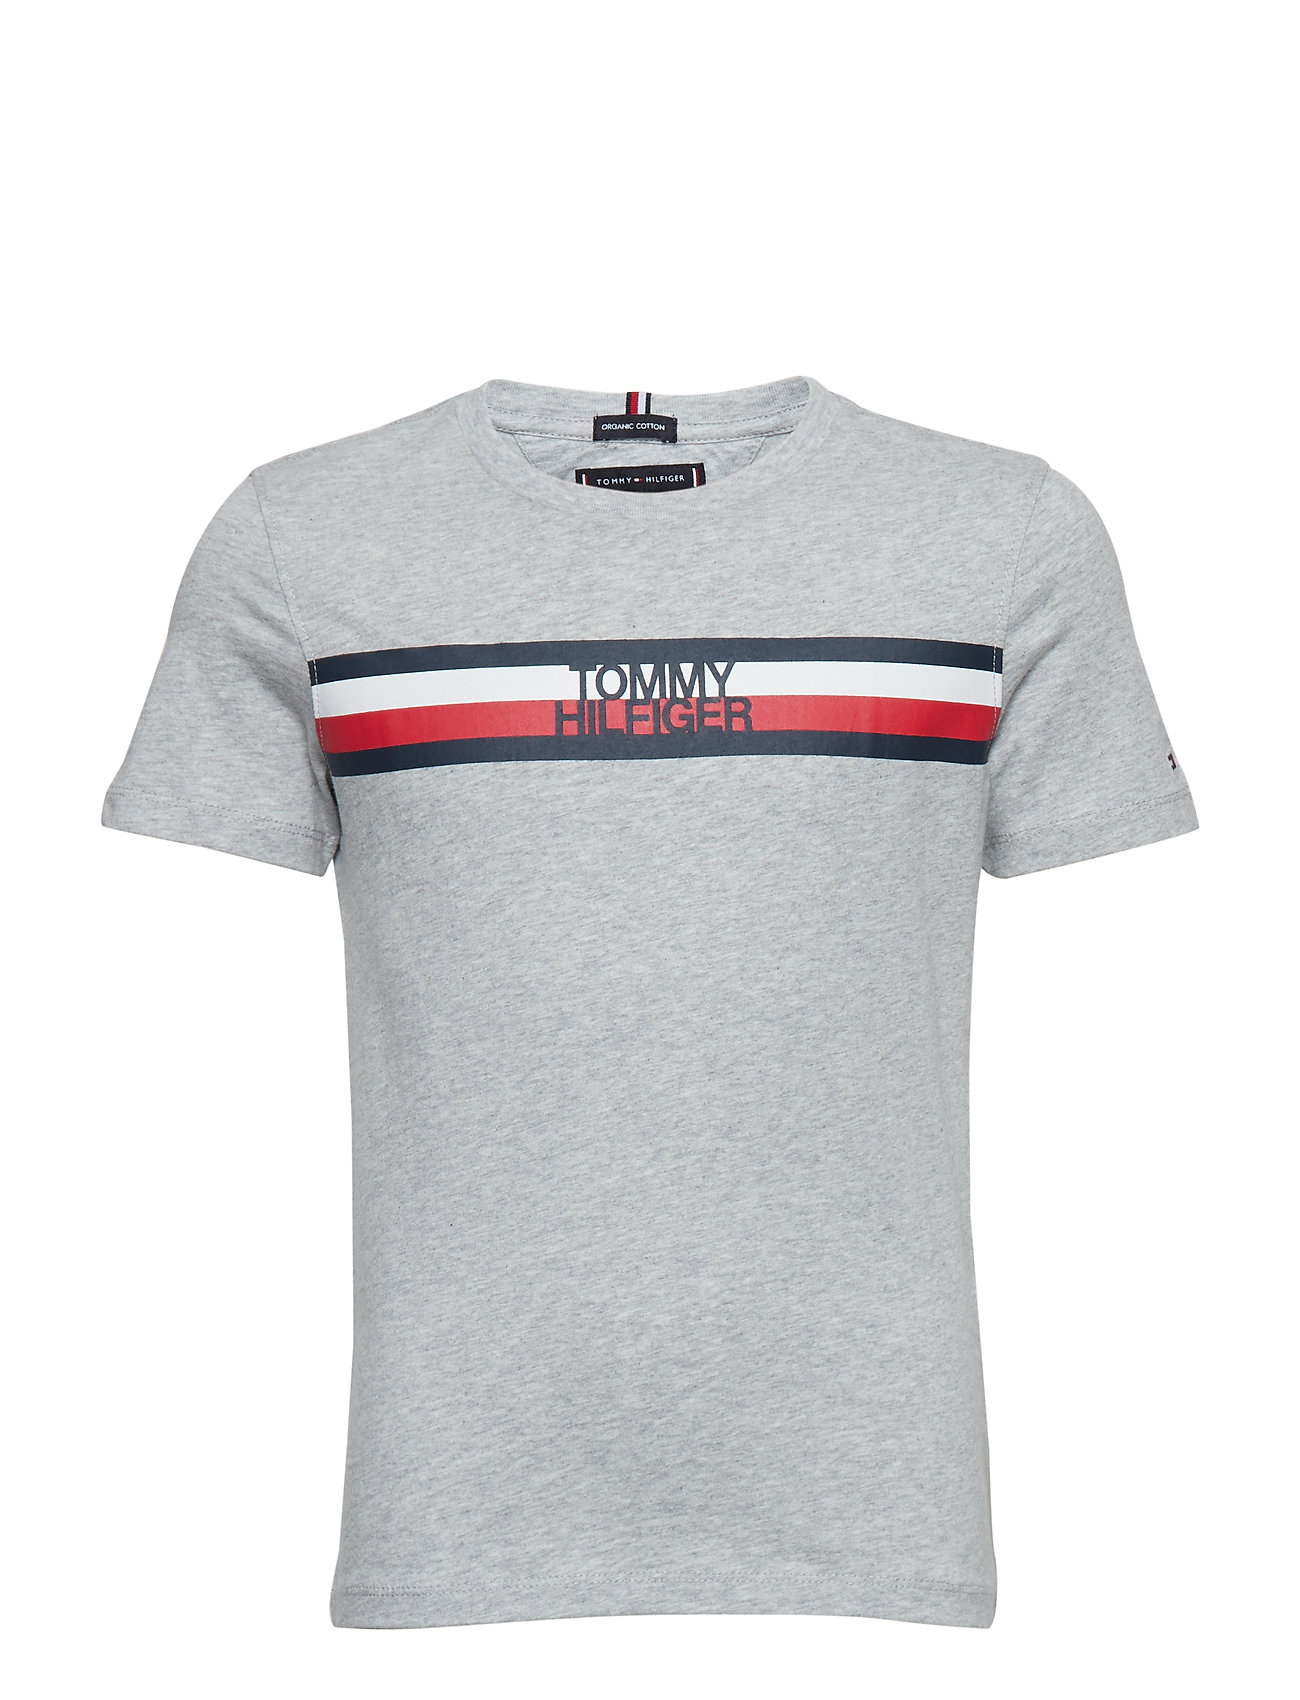 9a263bf6 ... Grå TOMMY HILFIGER. Essential Global Stripe Tee S/S Boys T-shirts  Short-sleeved T-